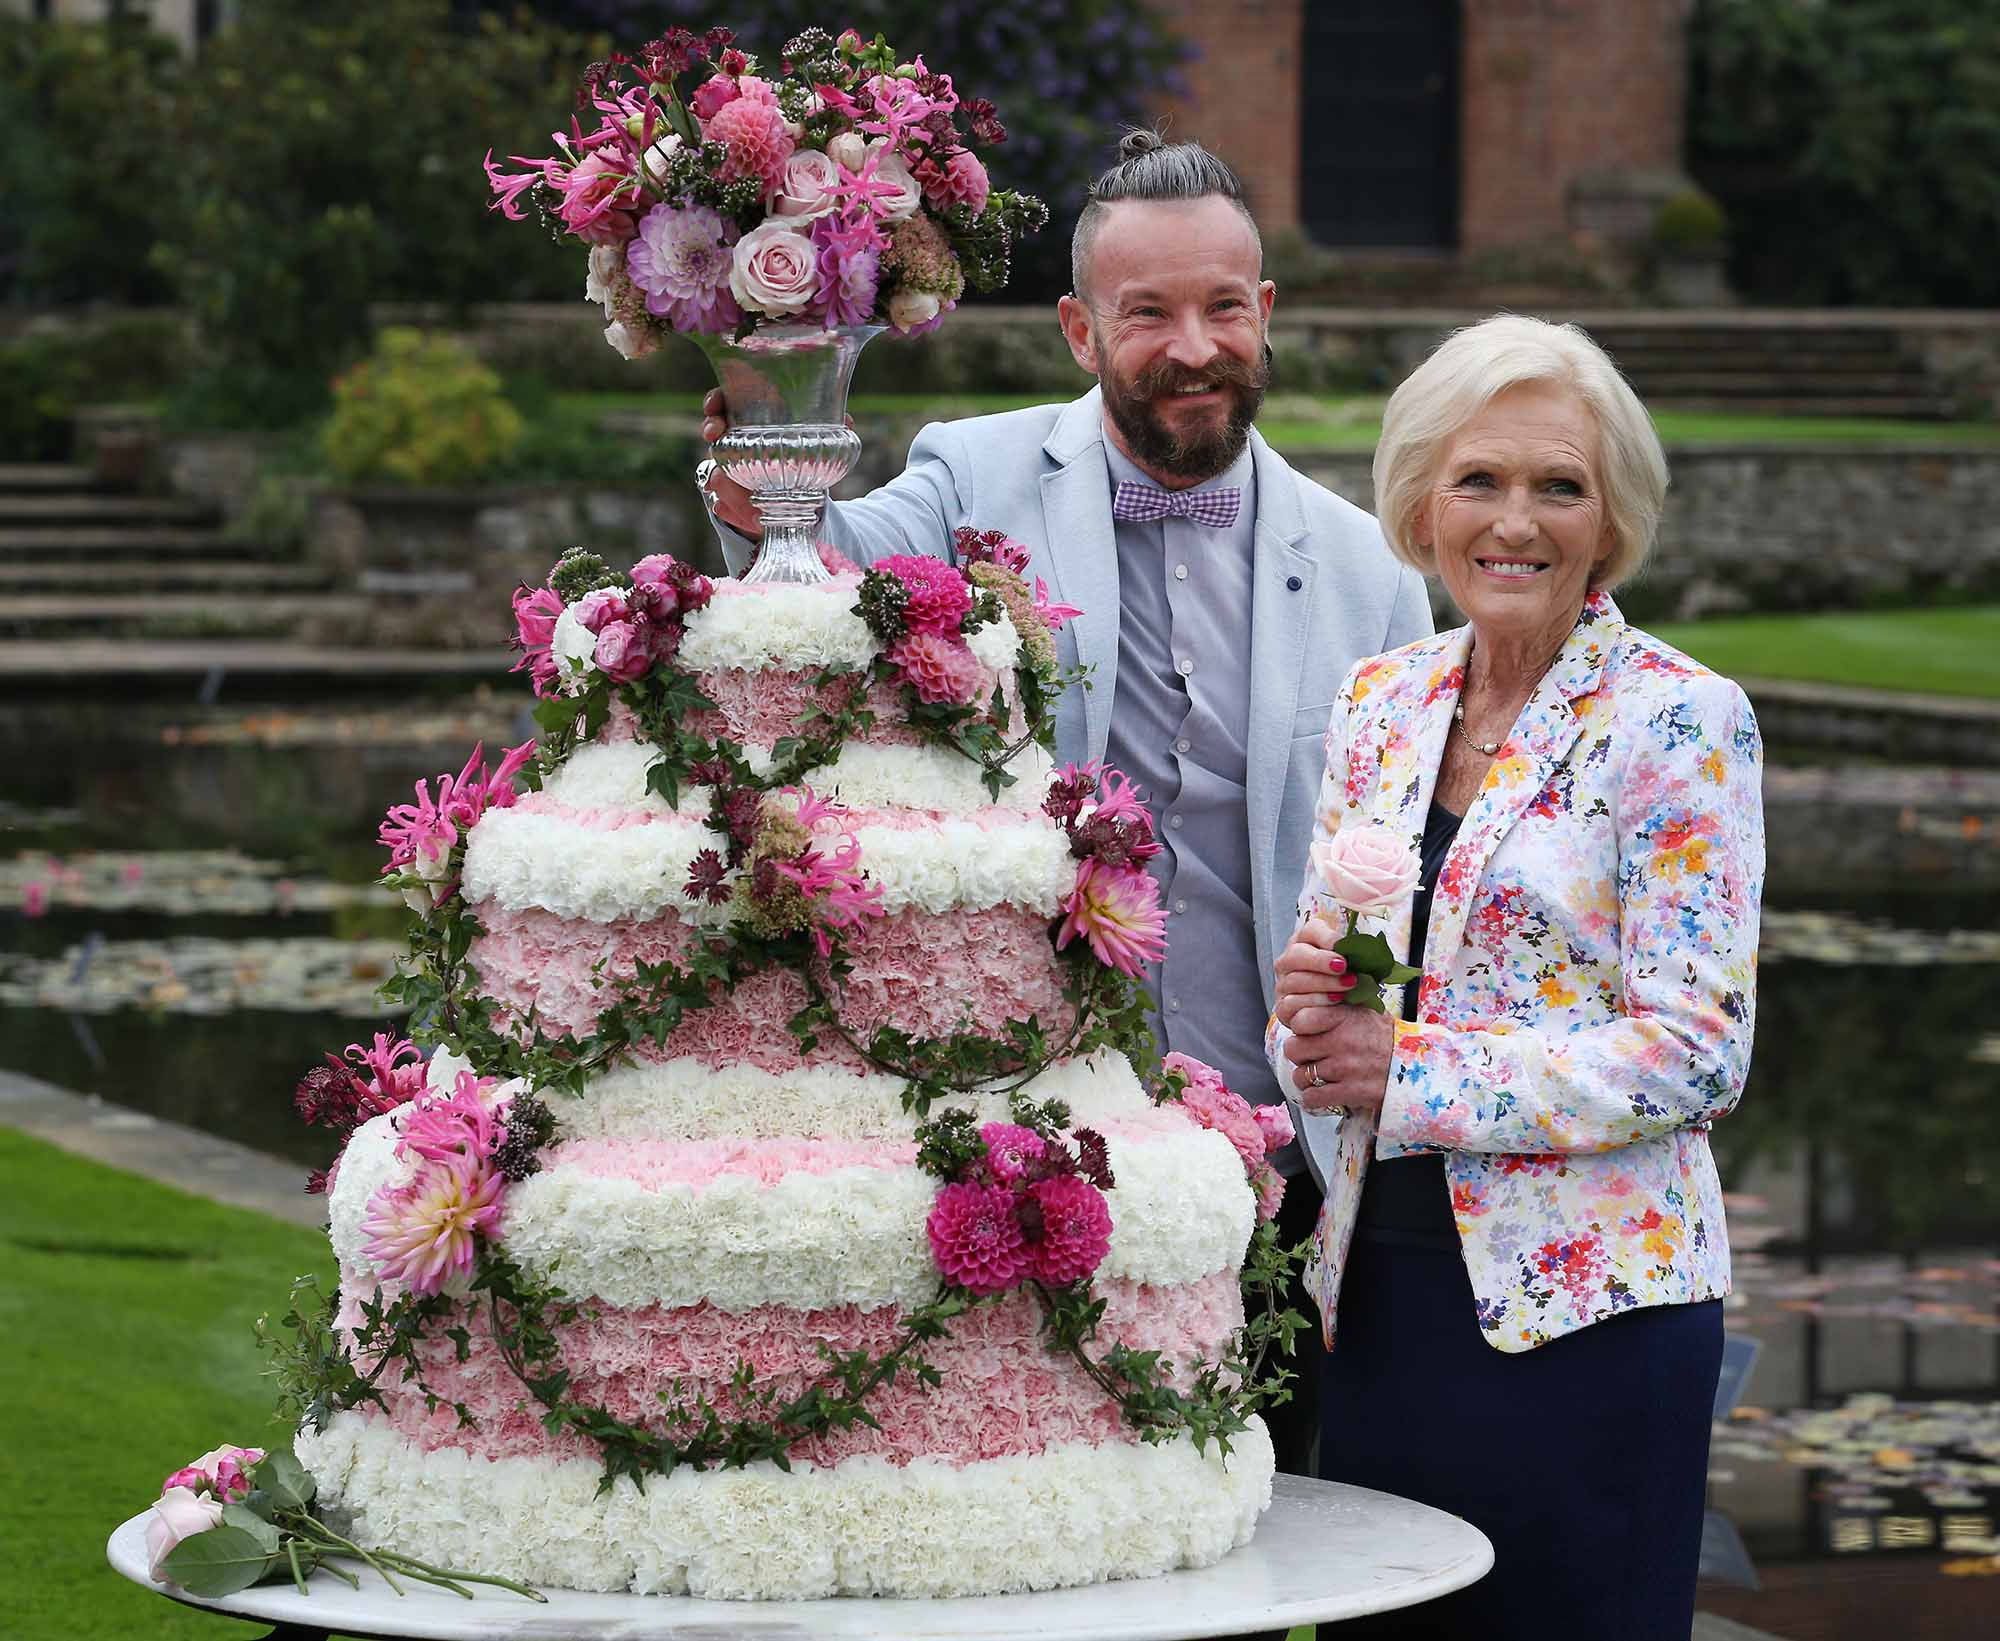 Simon with Mary Berry at the RHS Wisley Flower Show